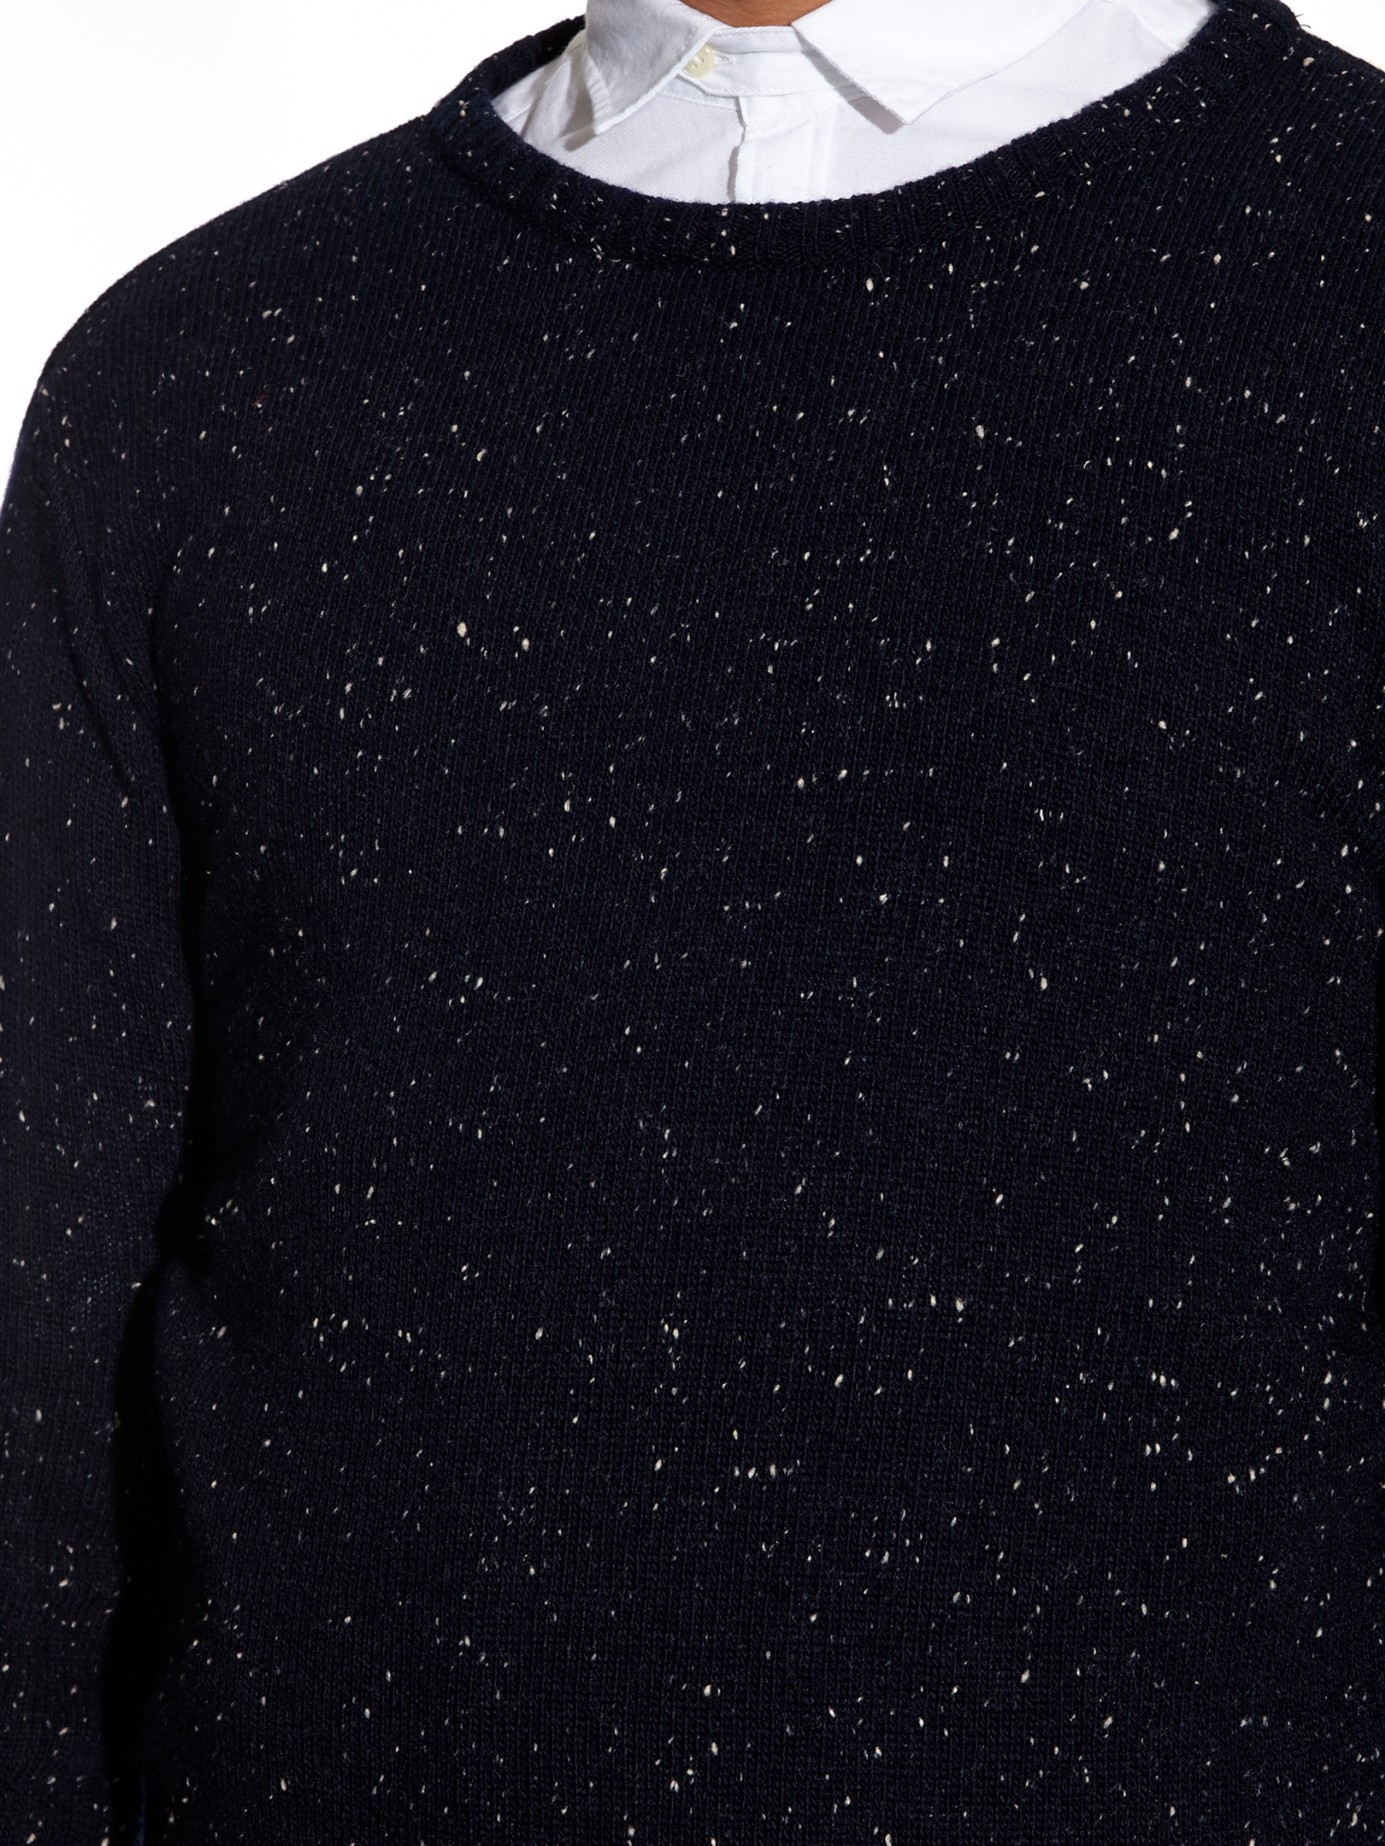 Oliver spencer Donegal Wool Sweater in Blue for Men | Lyst